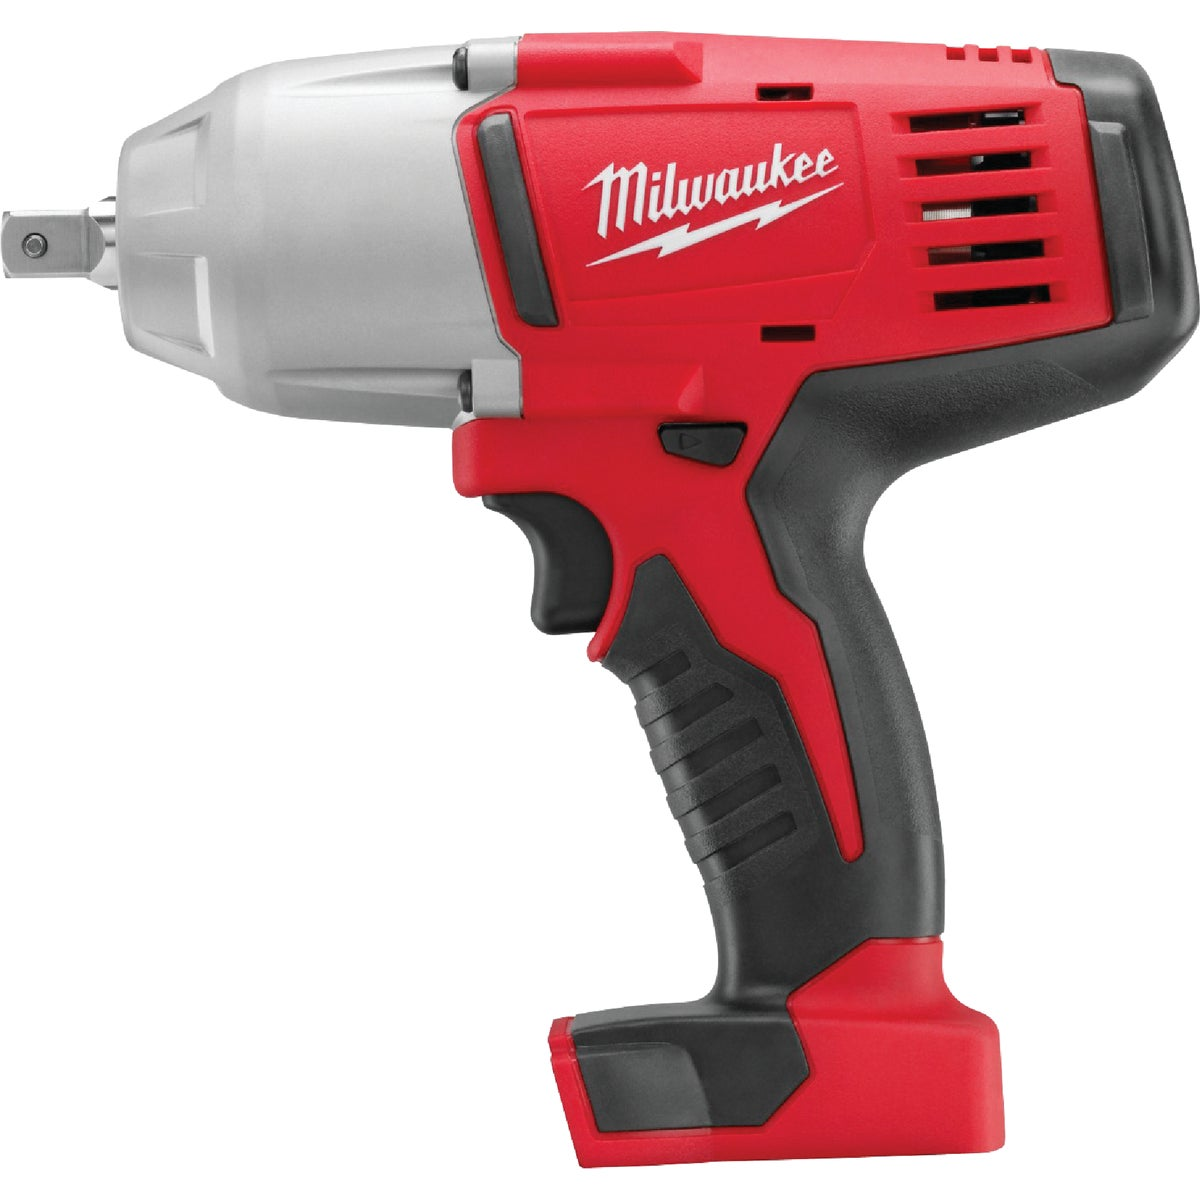 "M18 1/2"" IMPACT WRENCH"